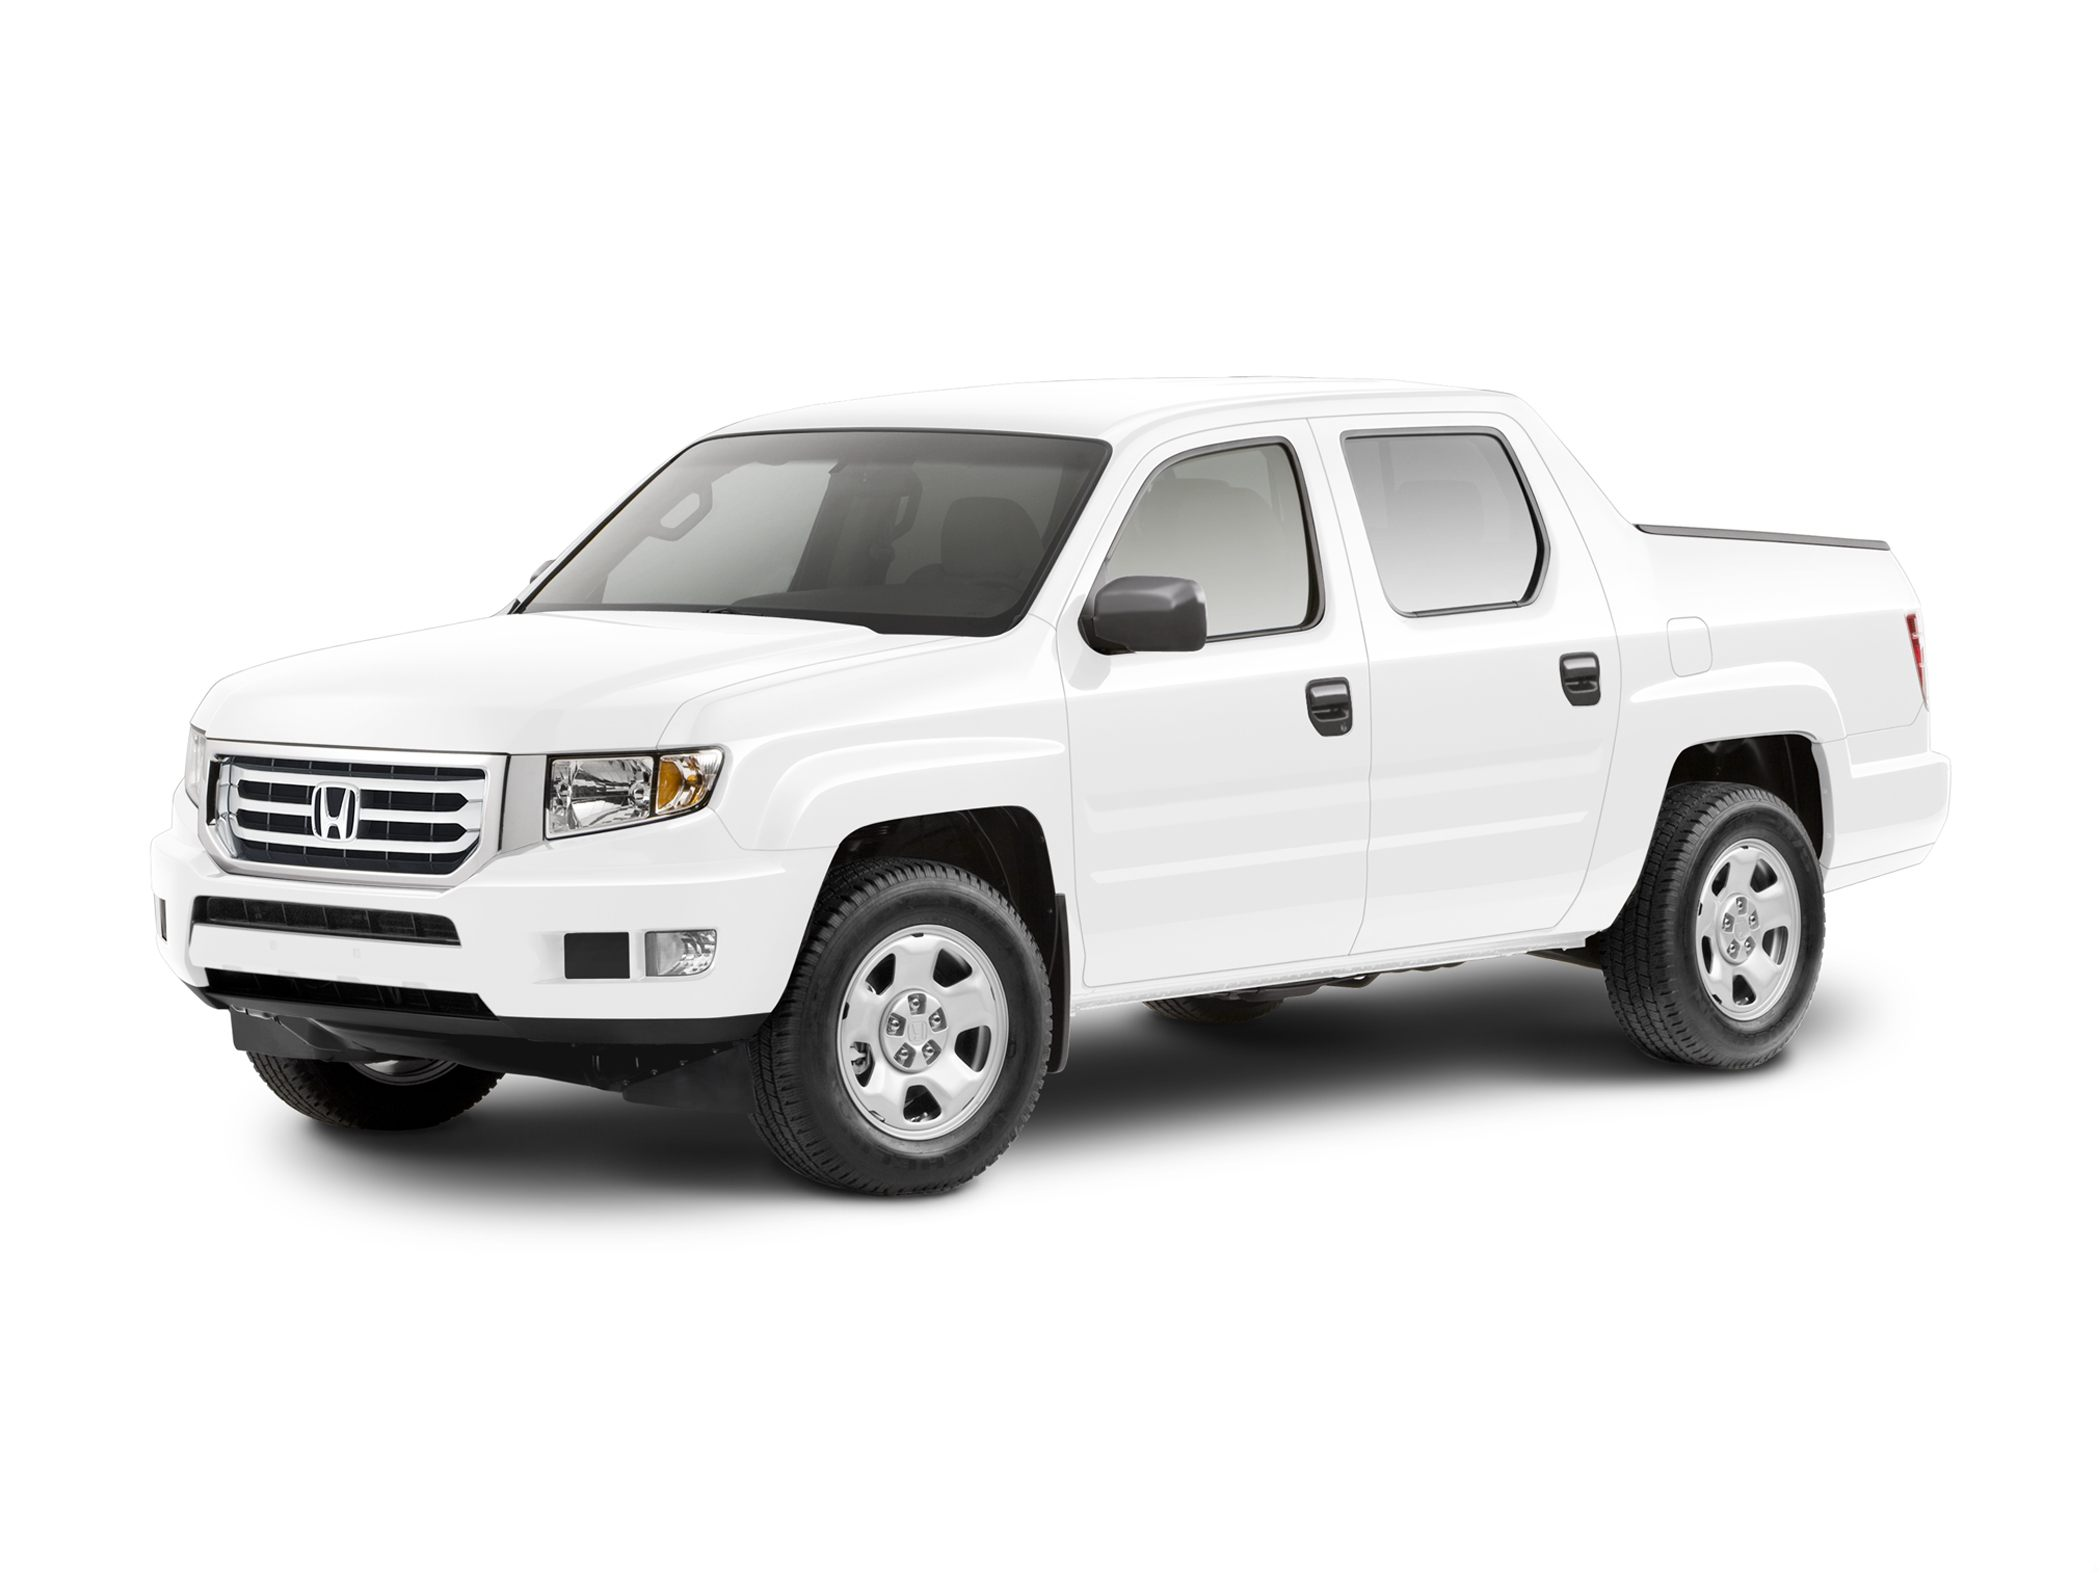 Pictures of honda ridgeline #8